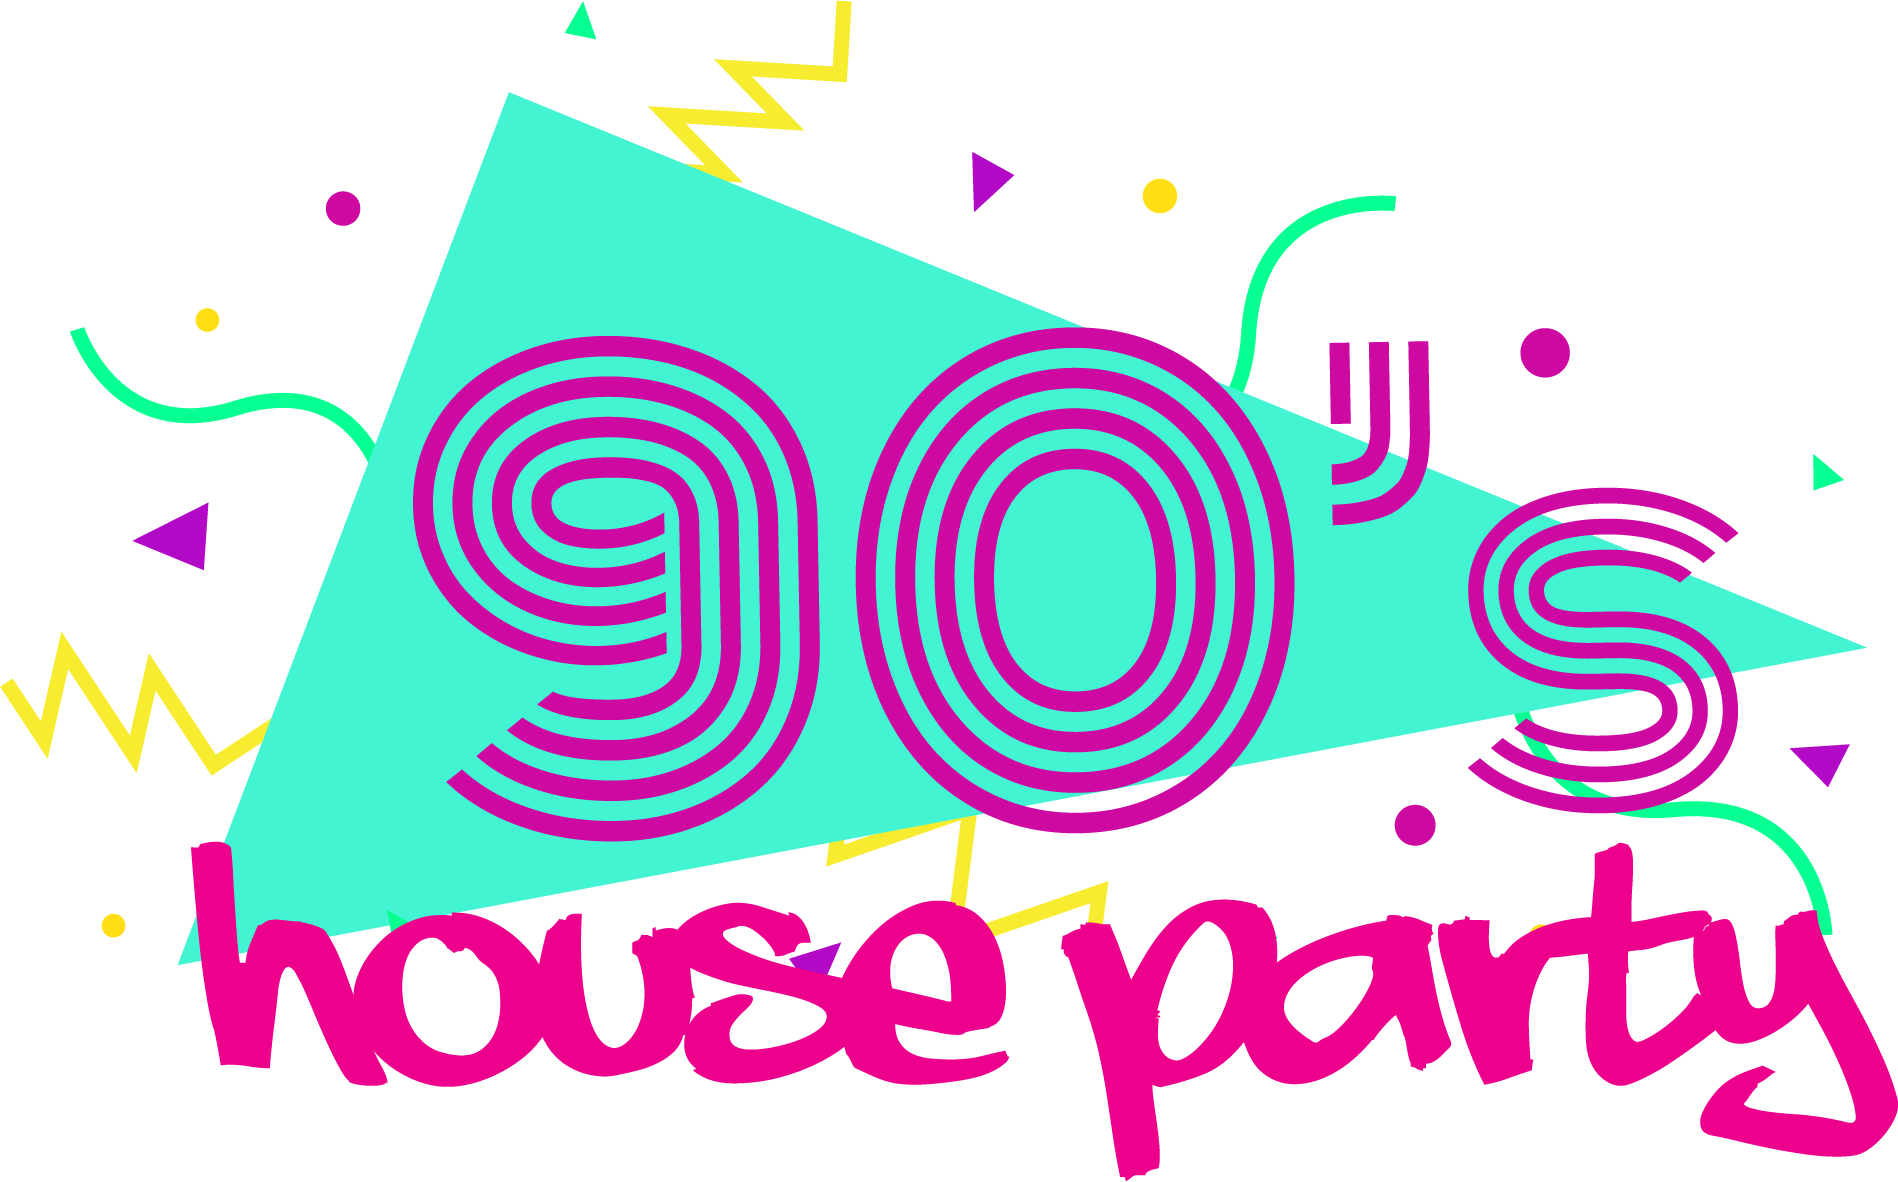 90s transparent retro. S house party